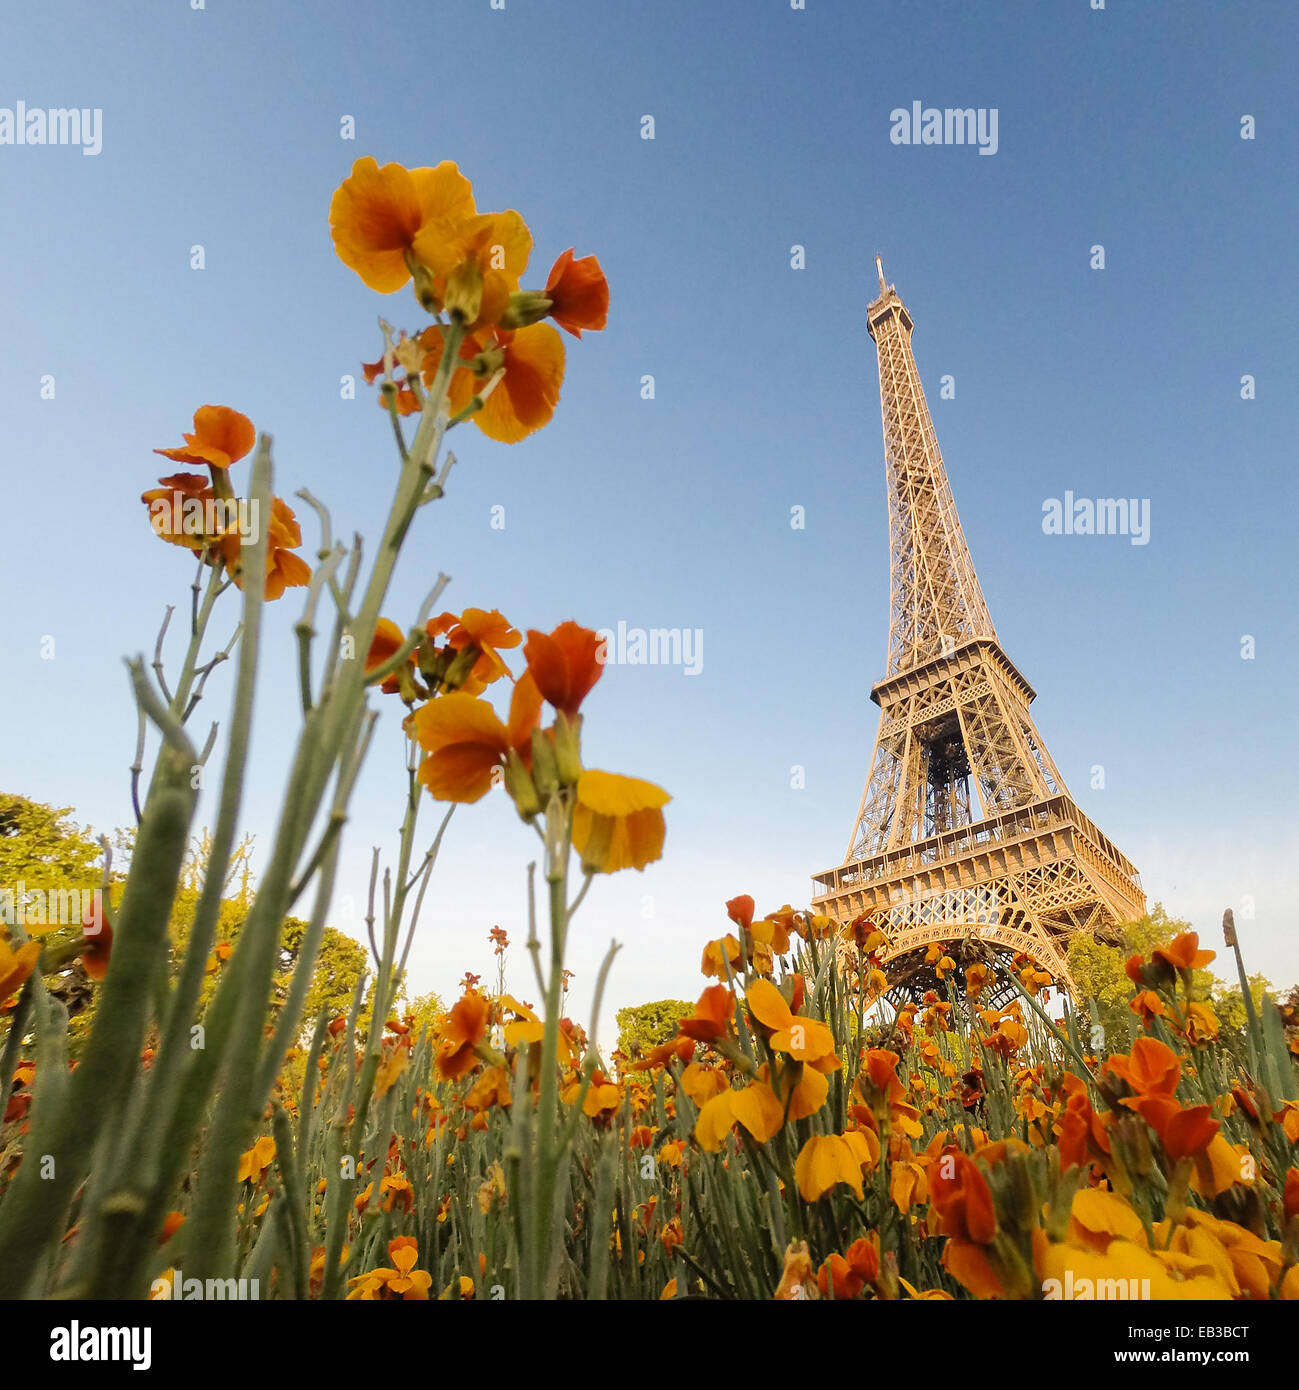 Eiffel Tower seen through flowers, paris, France - Stock Image